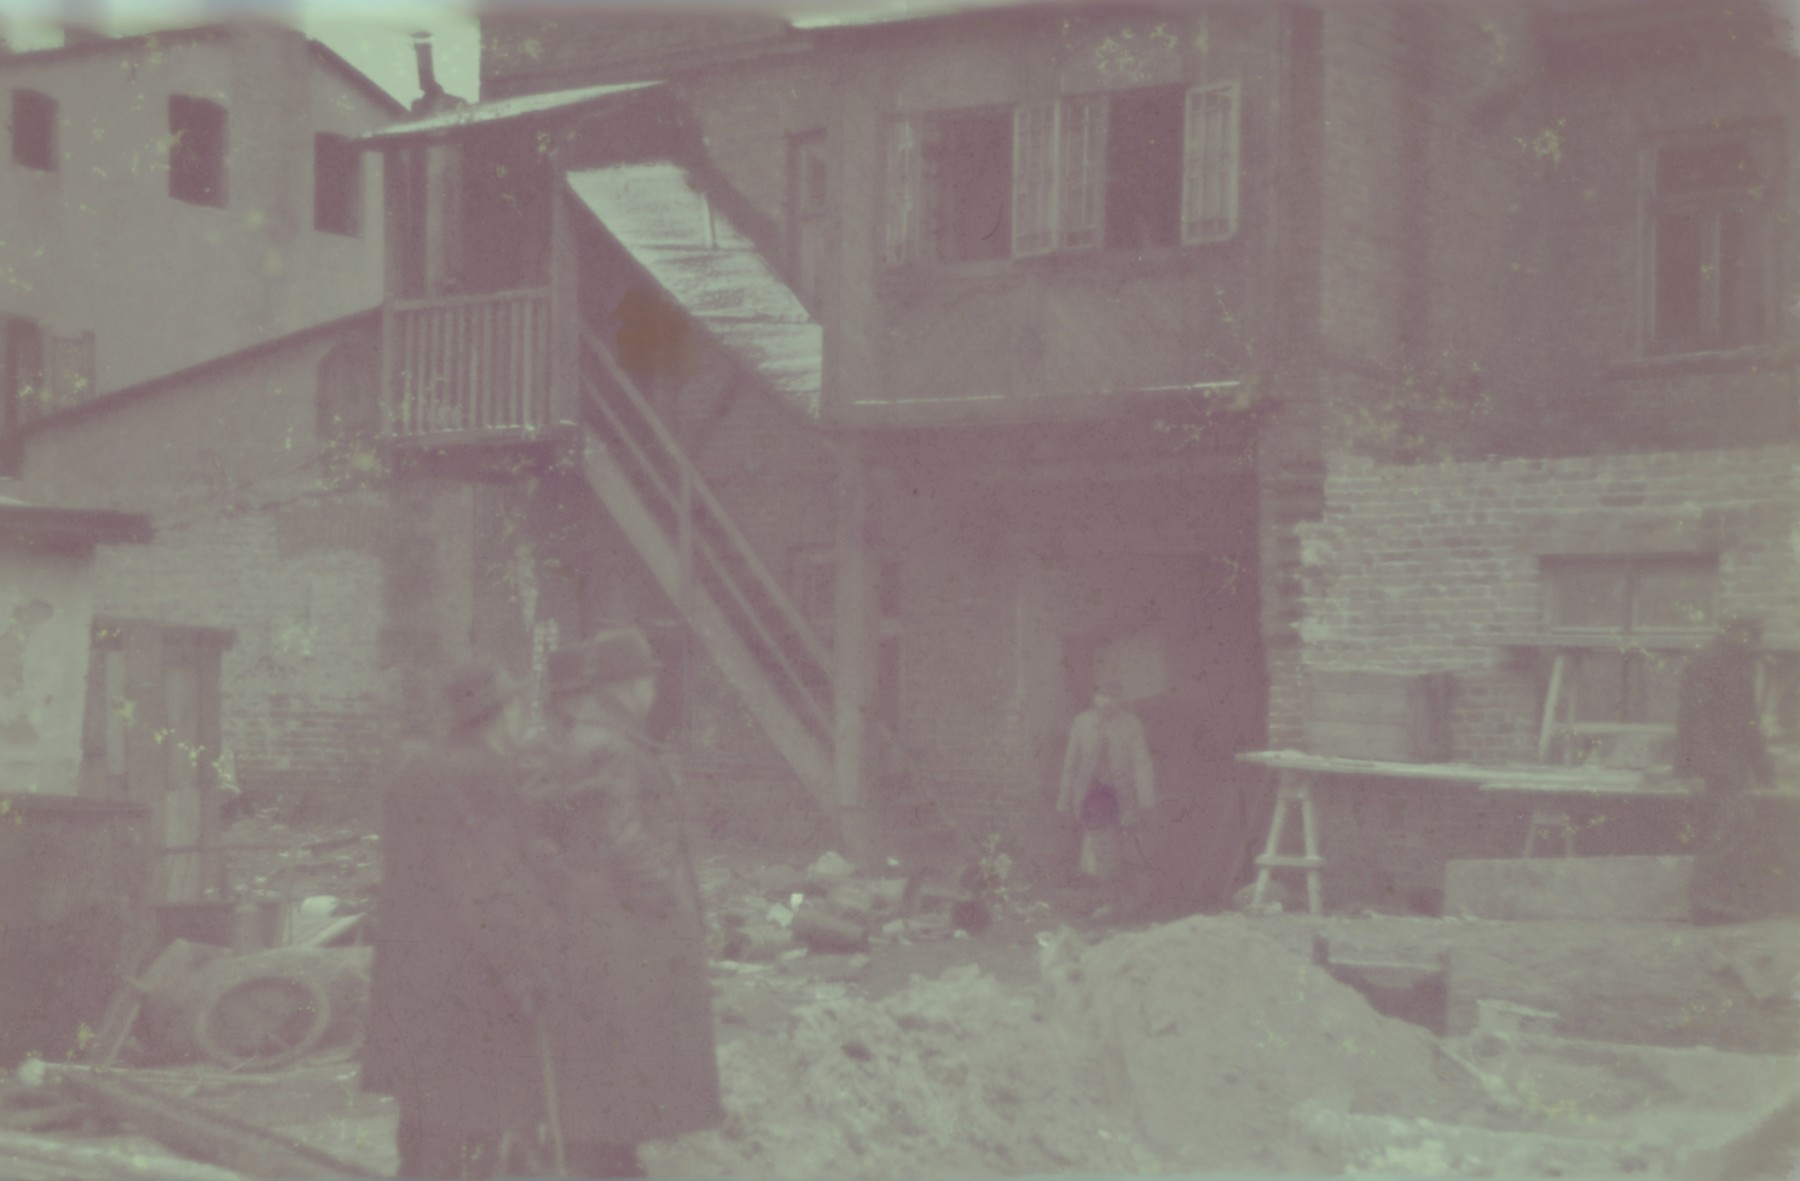 Two men survey a pile of rubble outside a building in the Lodz ghetto.